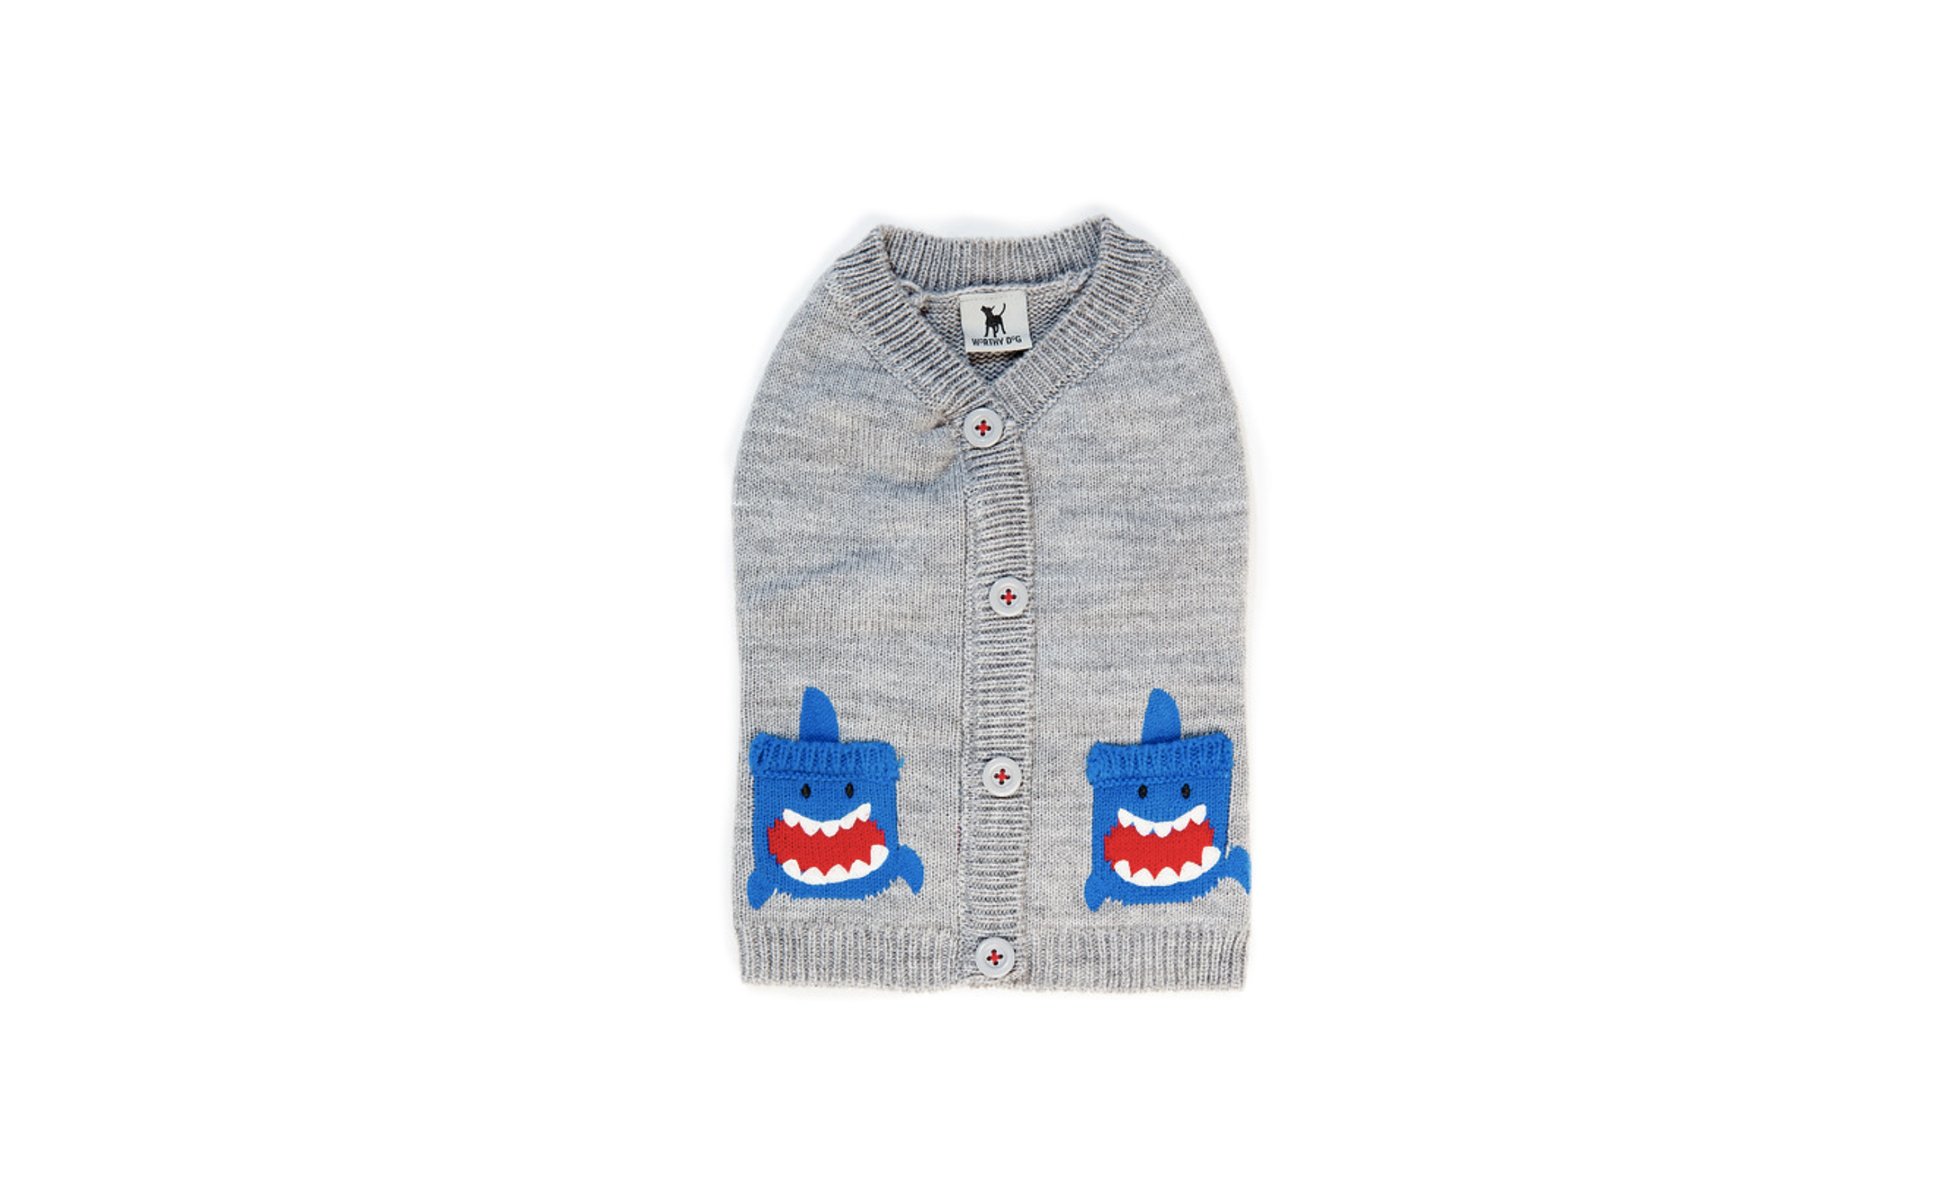 The Worthy Dog Shark Cardigan